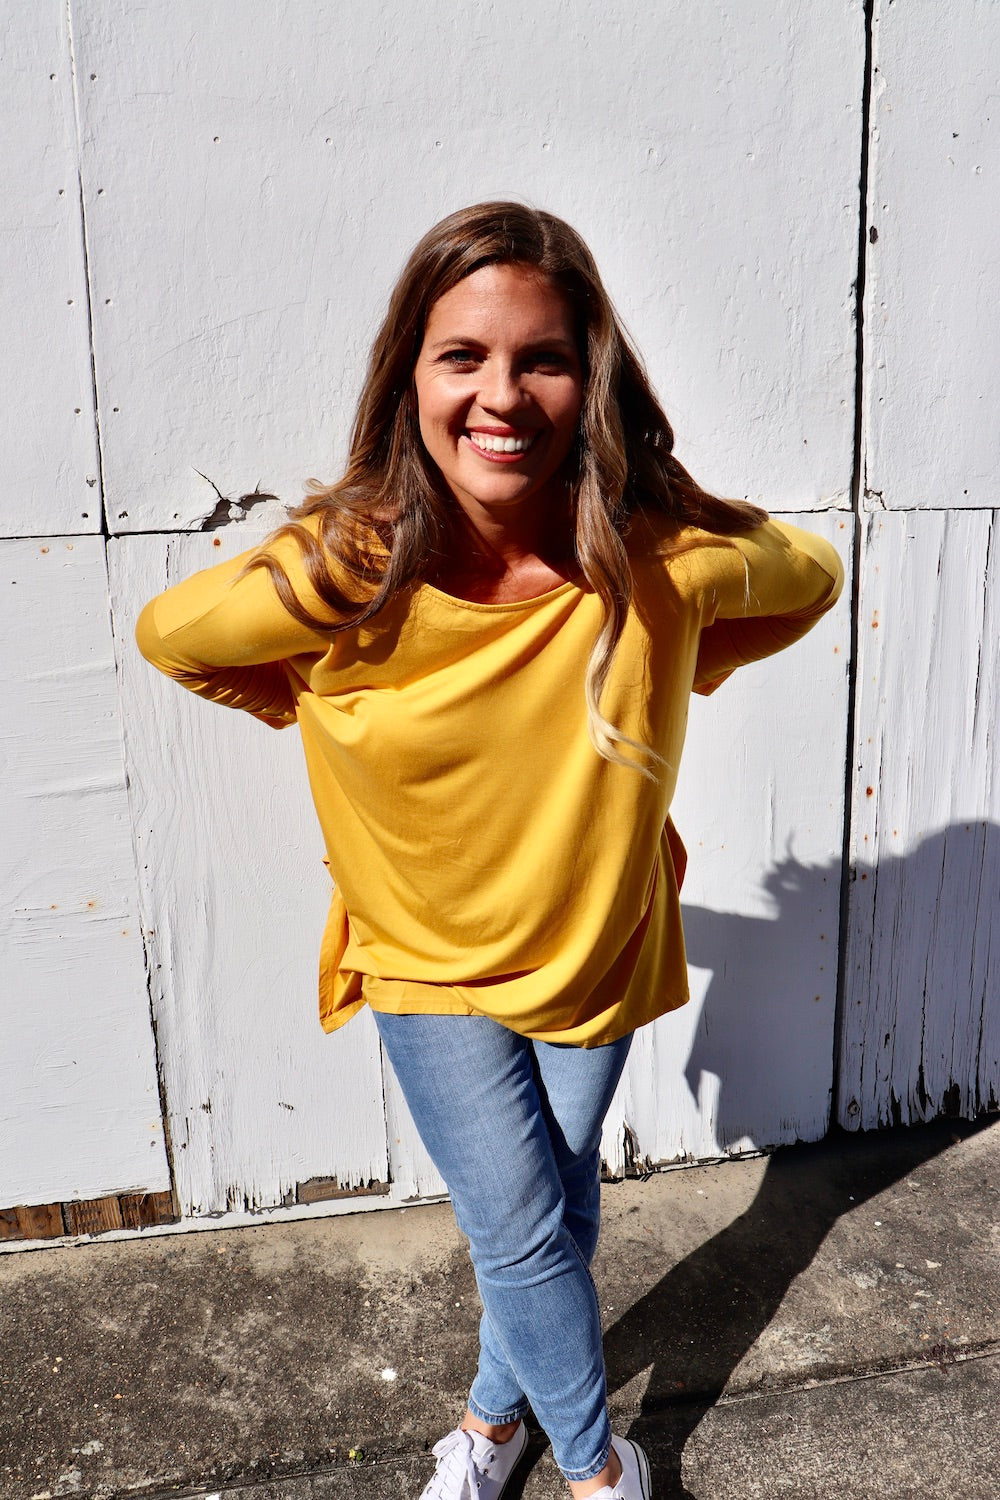 Basics - Oversized Longsleeve Jersey Top in Mustard